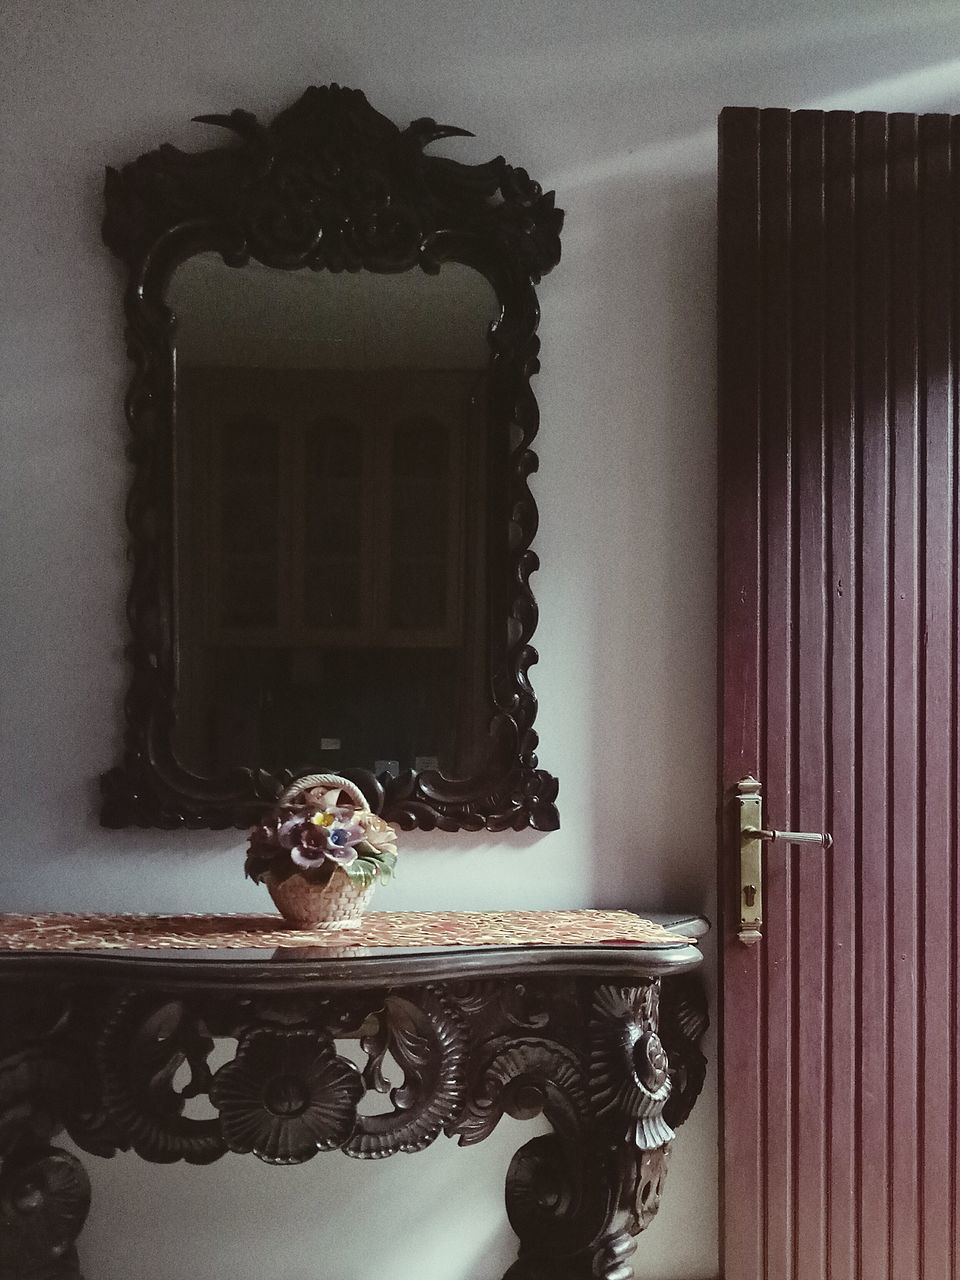 indoors, no people, home interior, old-fashioned, statue, tap, curtain, animal themes, day, mammal